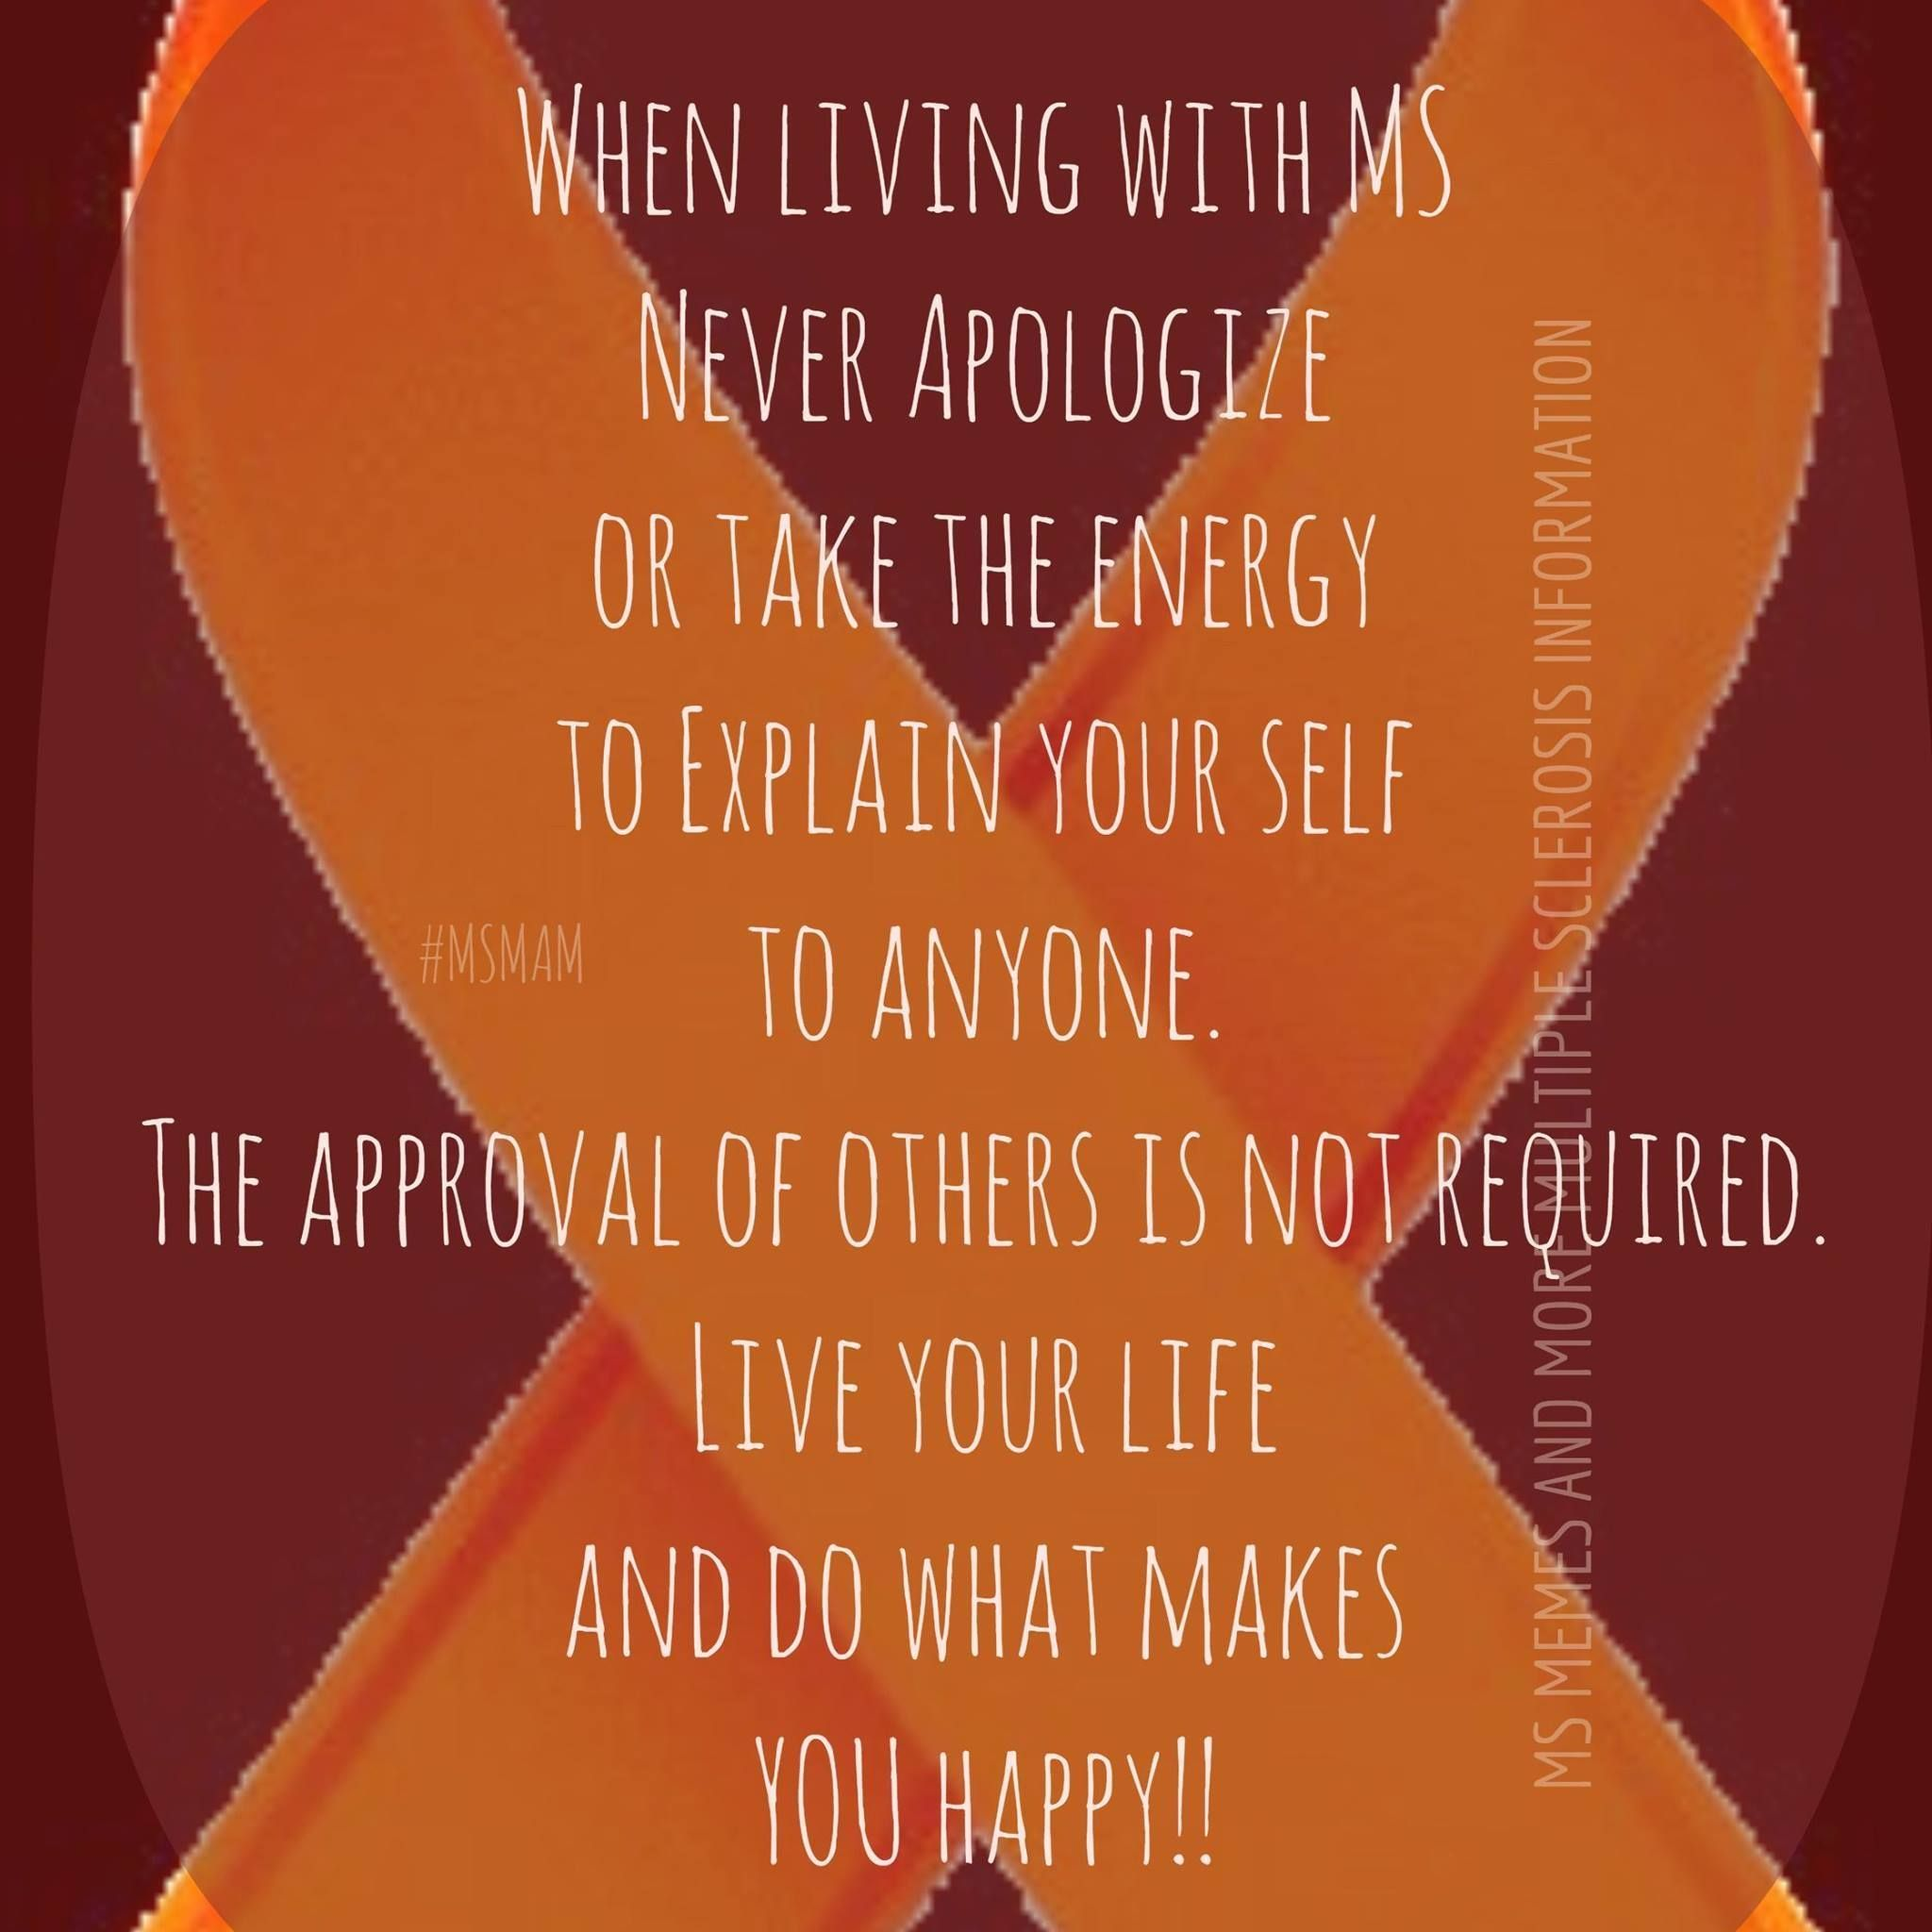 Pin by Paquita Roybal on Ms awareness | Multiple sclerosis ...